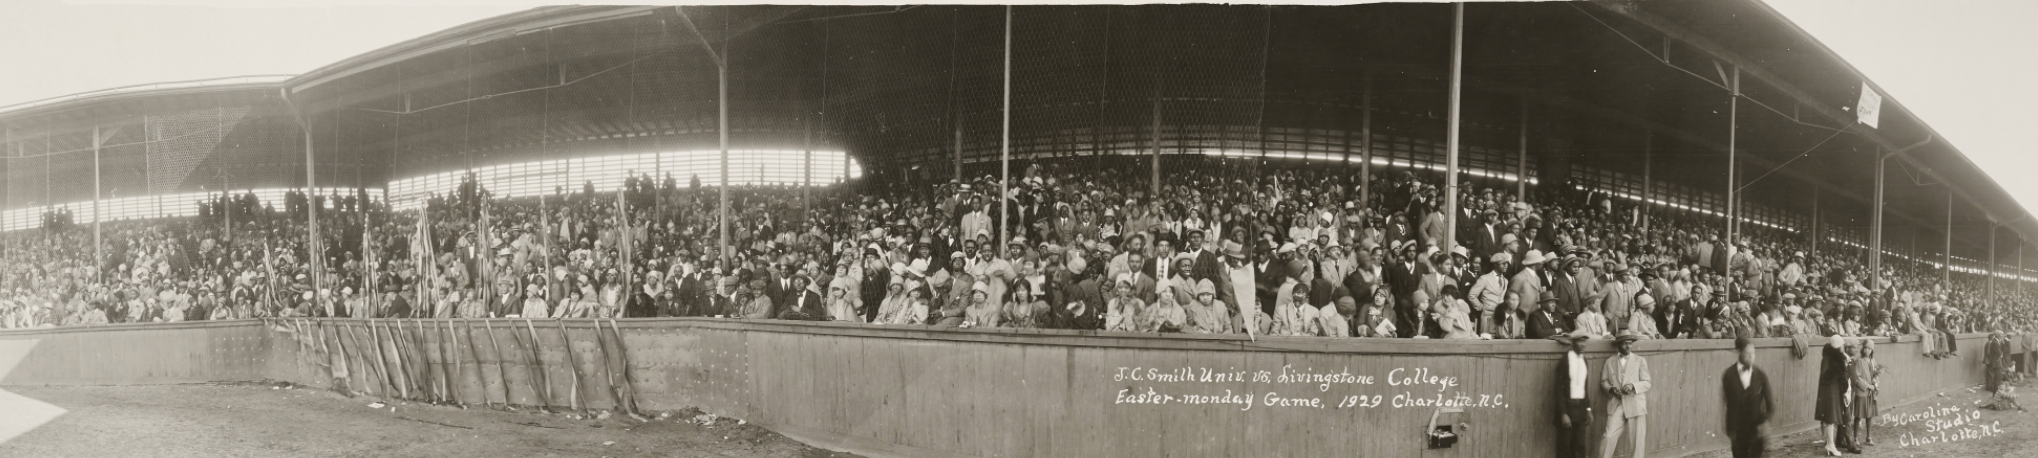 Panoramic photo of the crowd watching a baseball game from the stands.